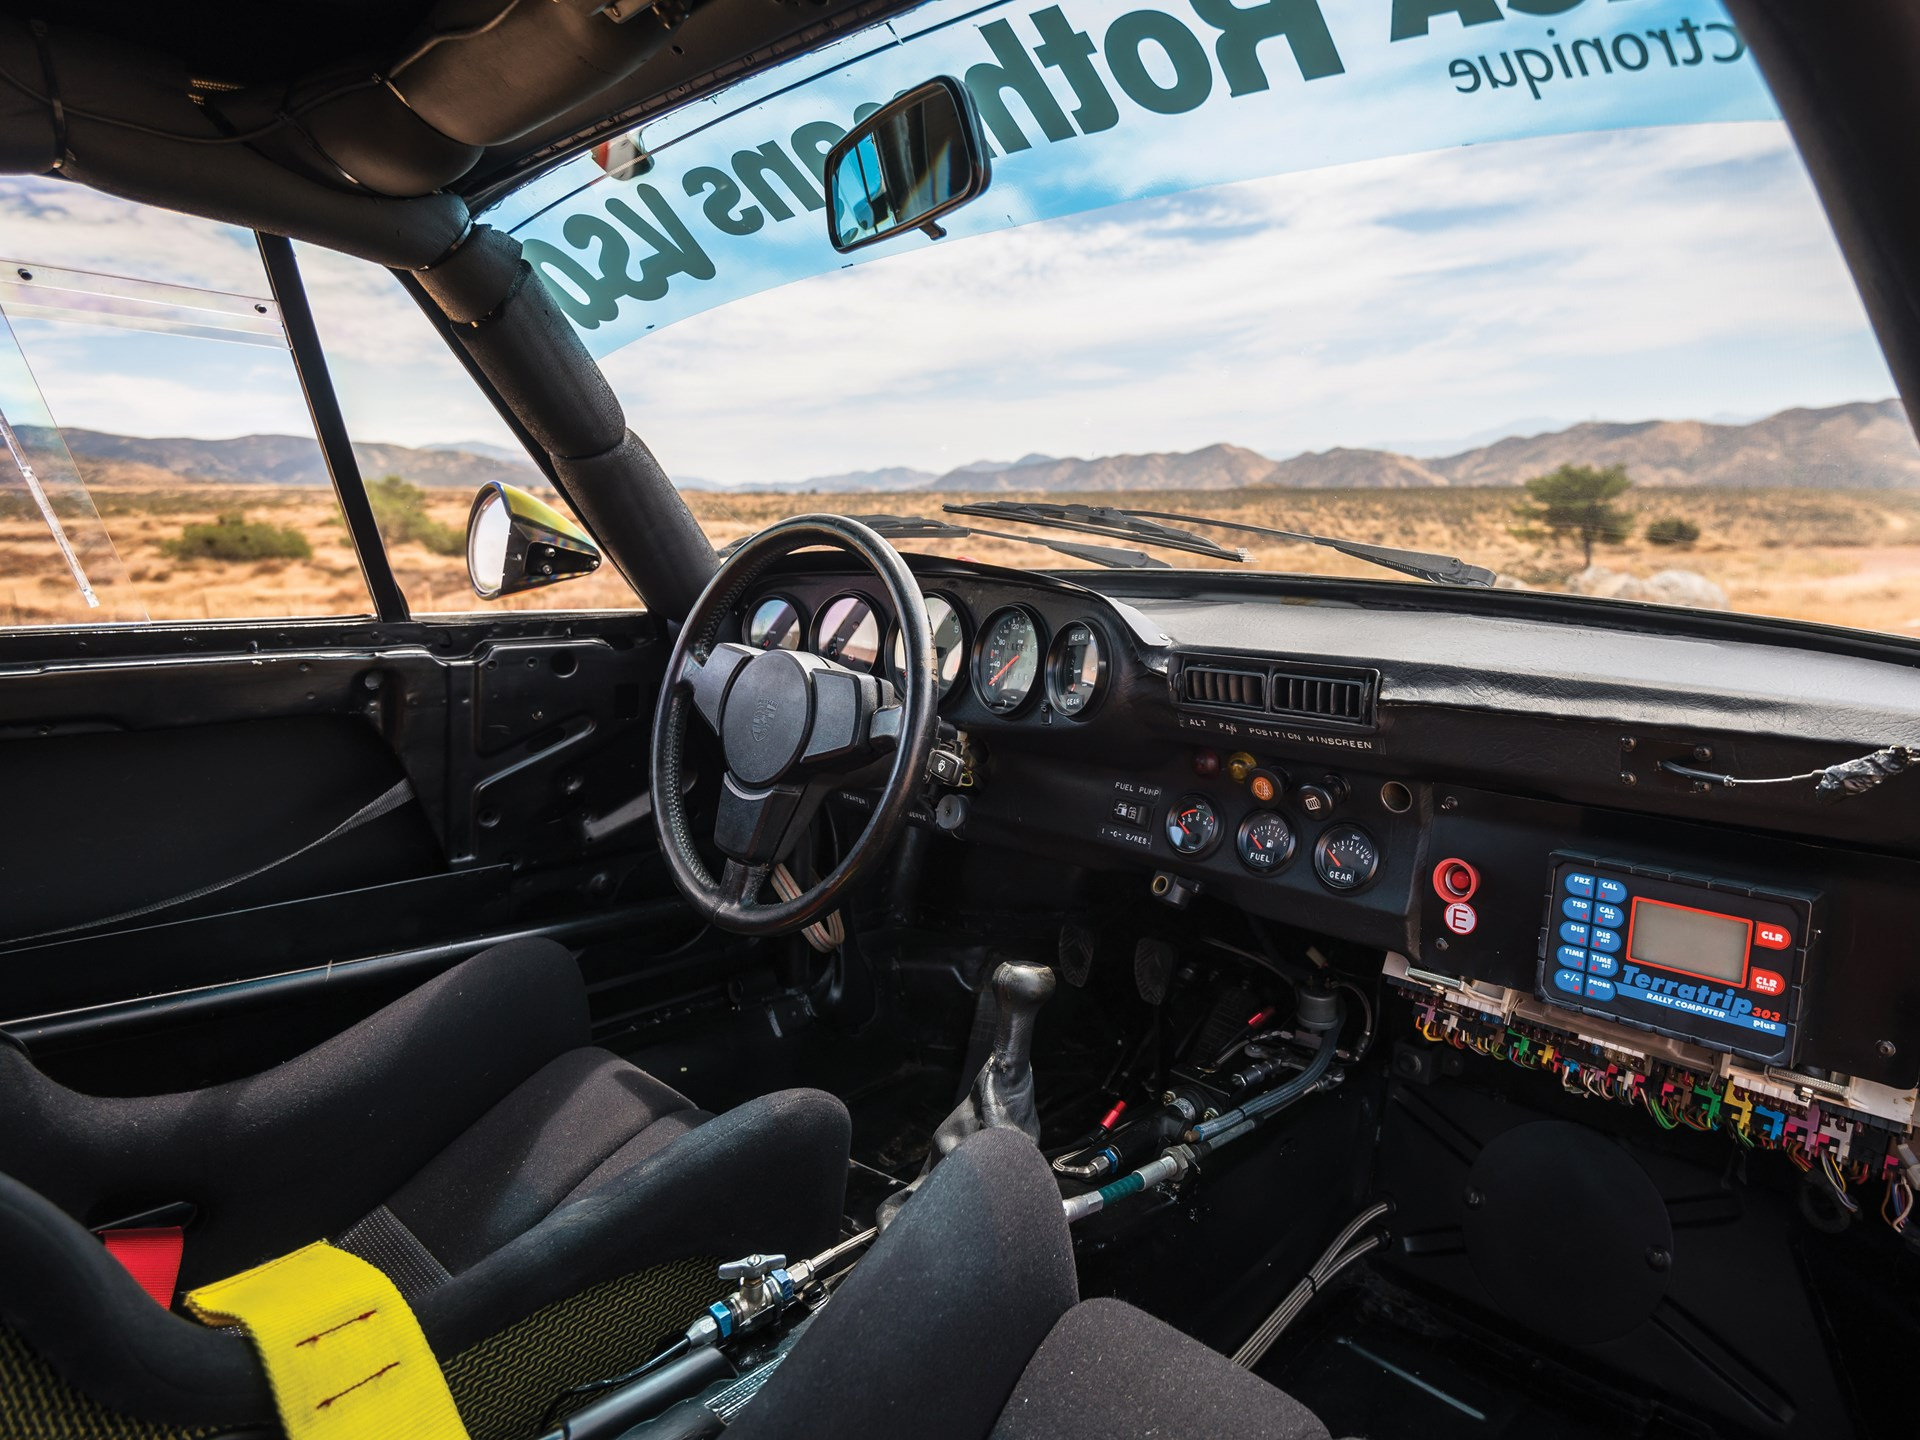 1985 Porsche 959 Paris-Dakar interior windshield